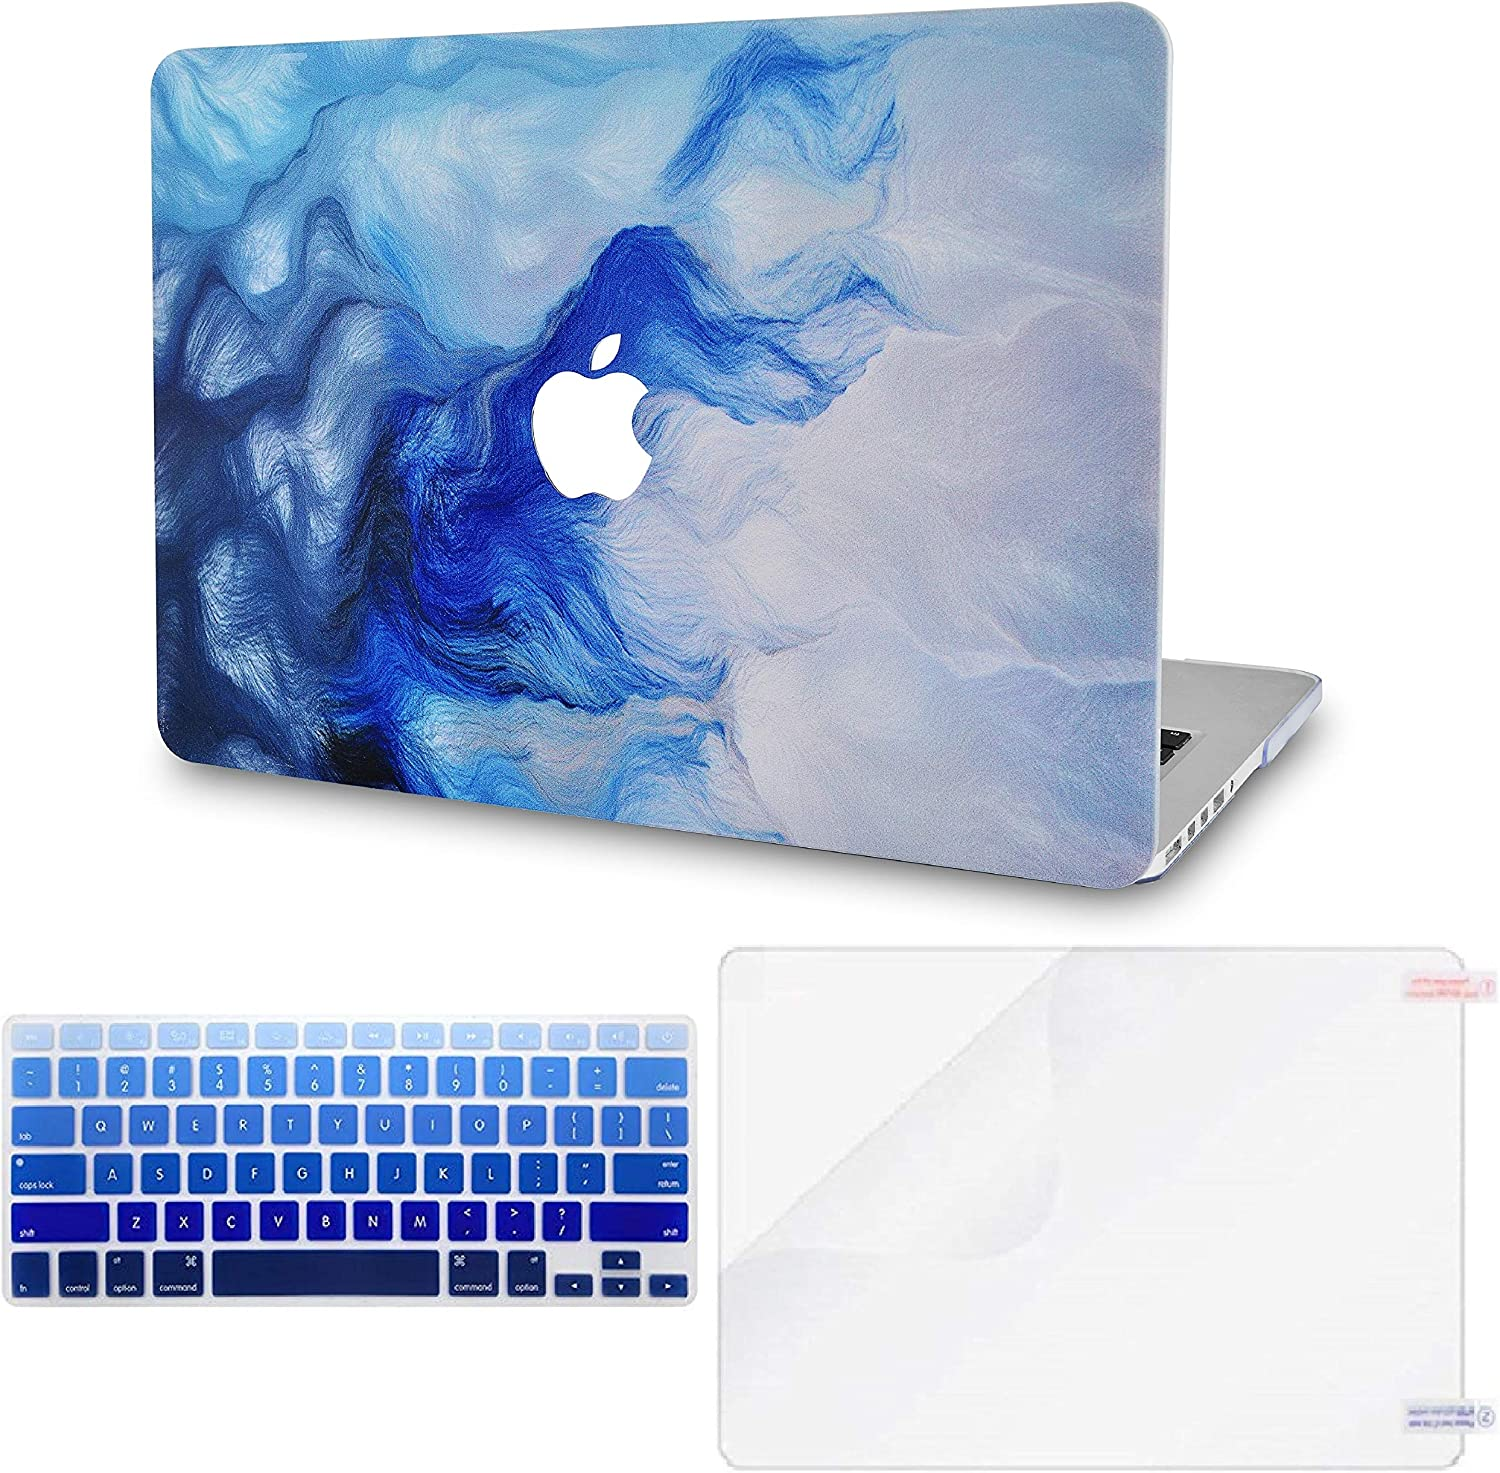 """LuvCase 3 in 1 LaptopCase forMacBookAir 11"""" A1465 / A1370HardShellCover, Keyboard Cover & Screen Protector(Mist 12)"""